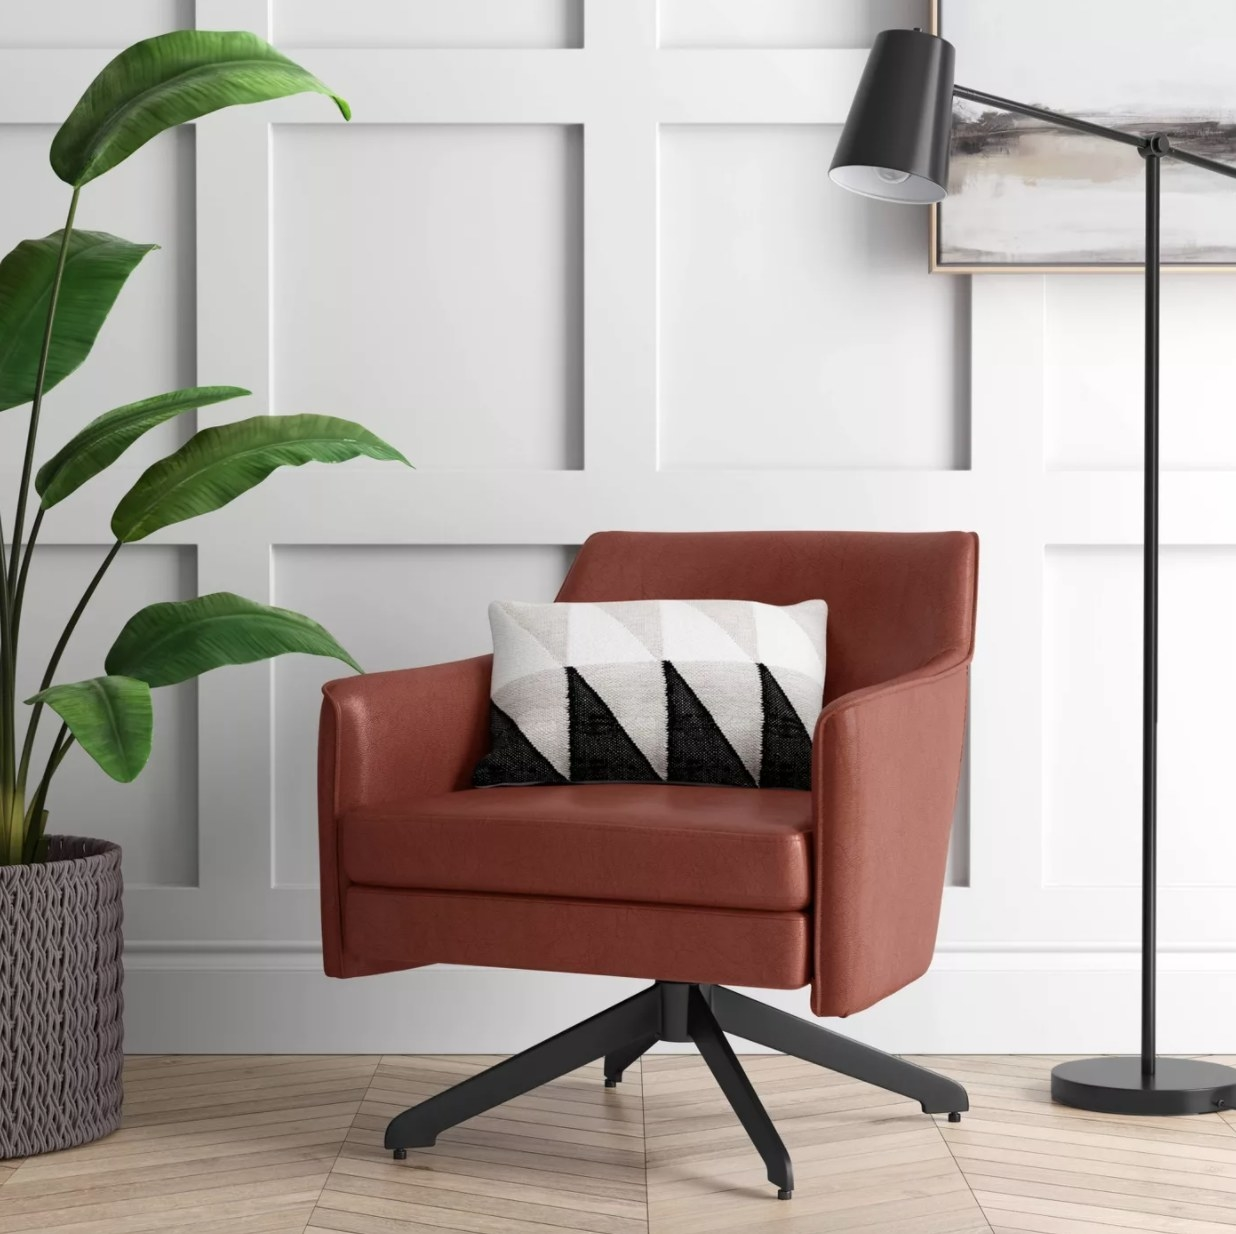 A brown faux leather accent chair with black metal swivel base